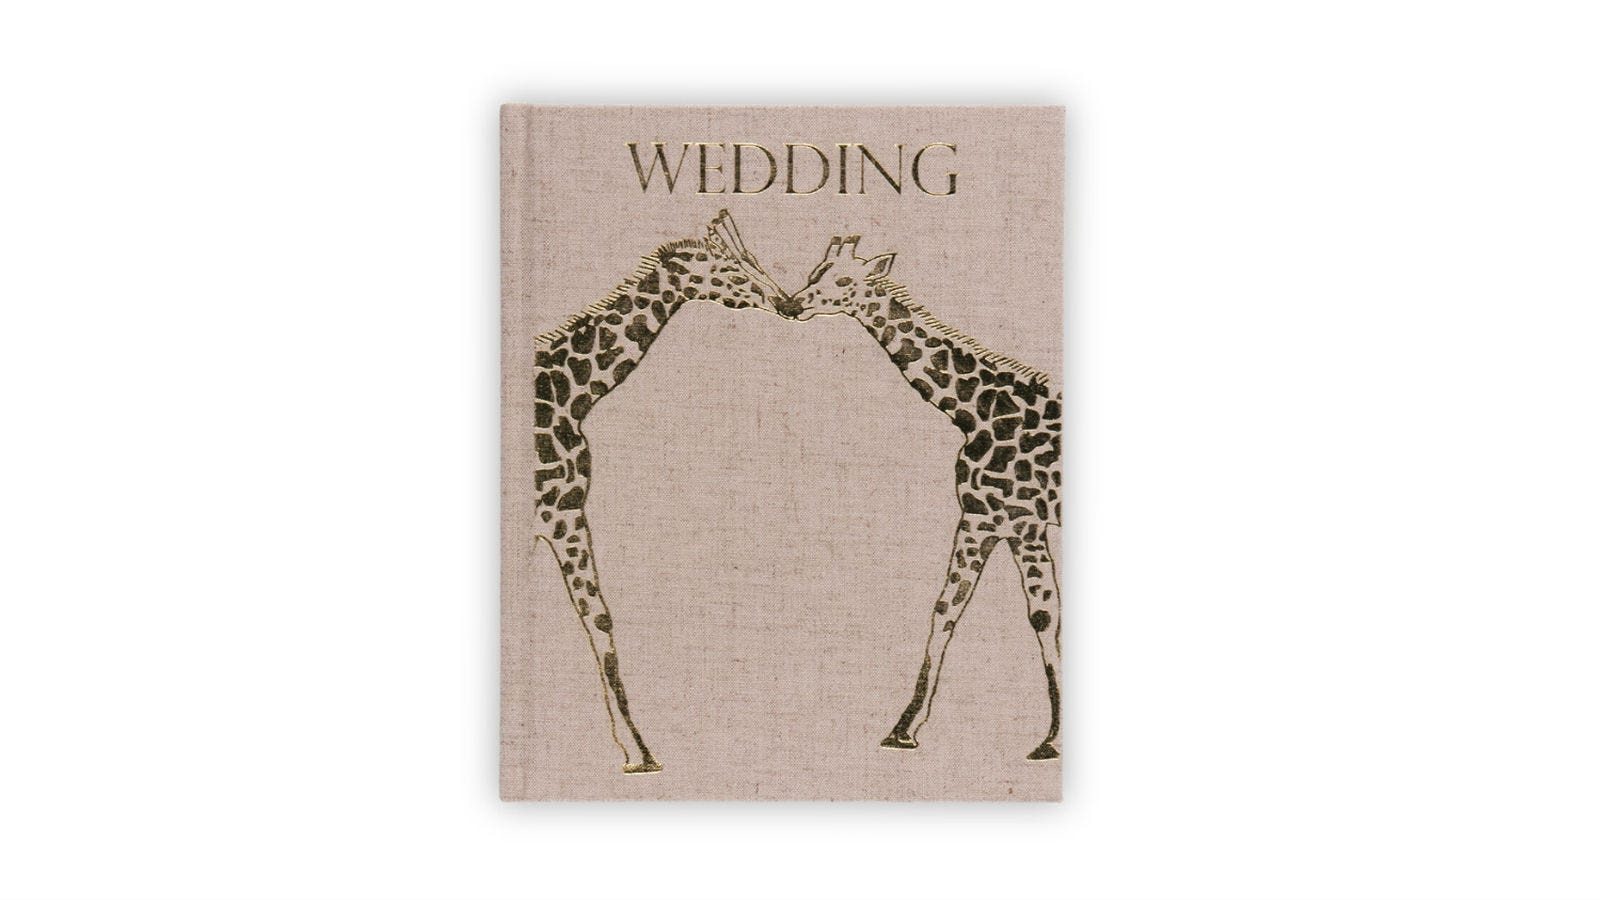 Over The Moon: The Wedding Book